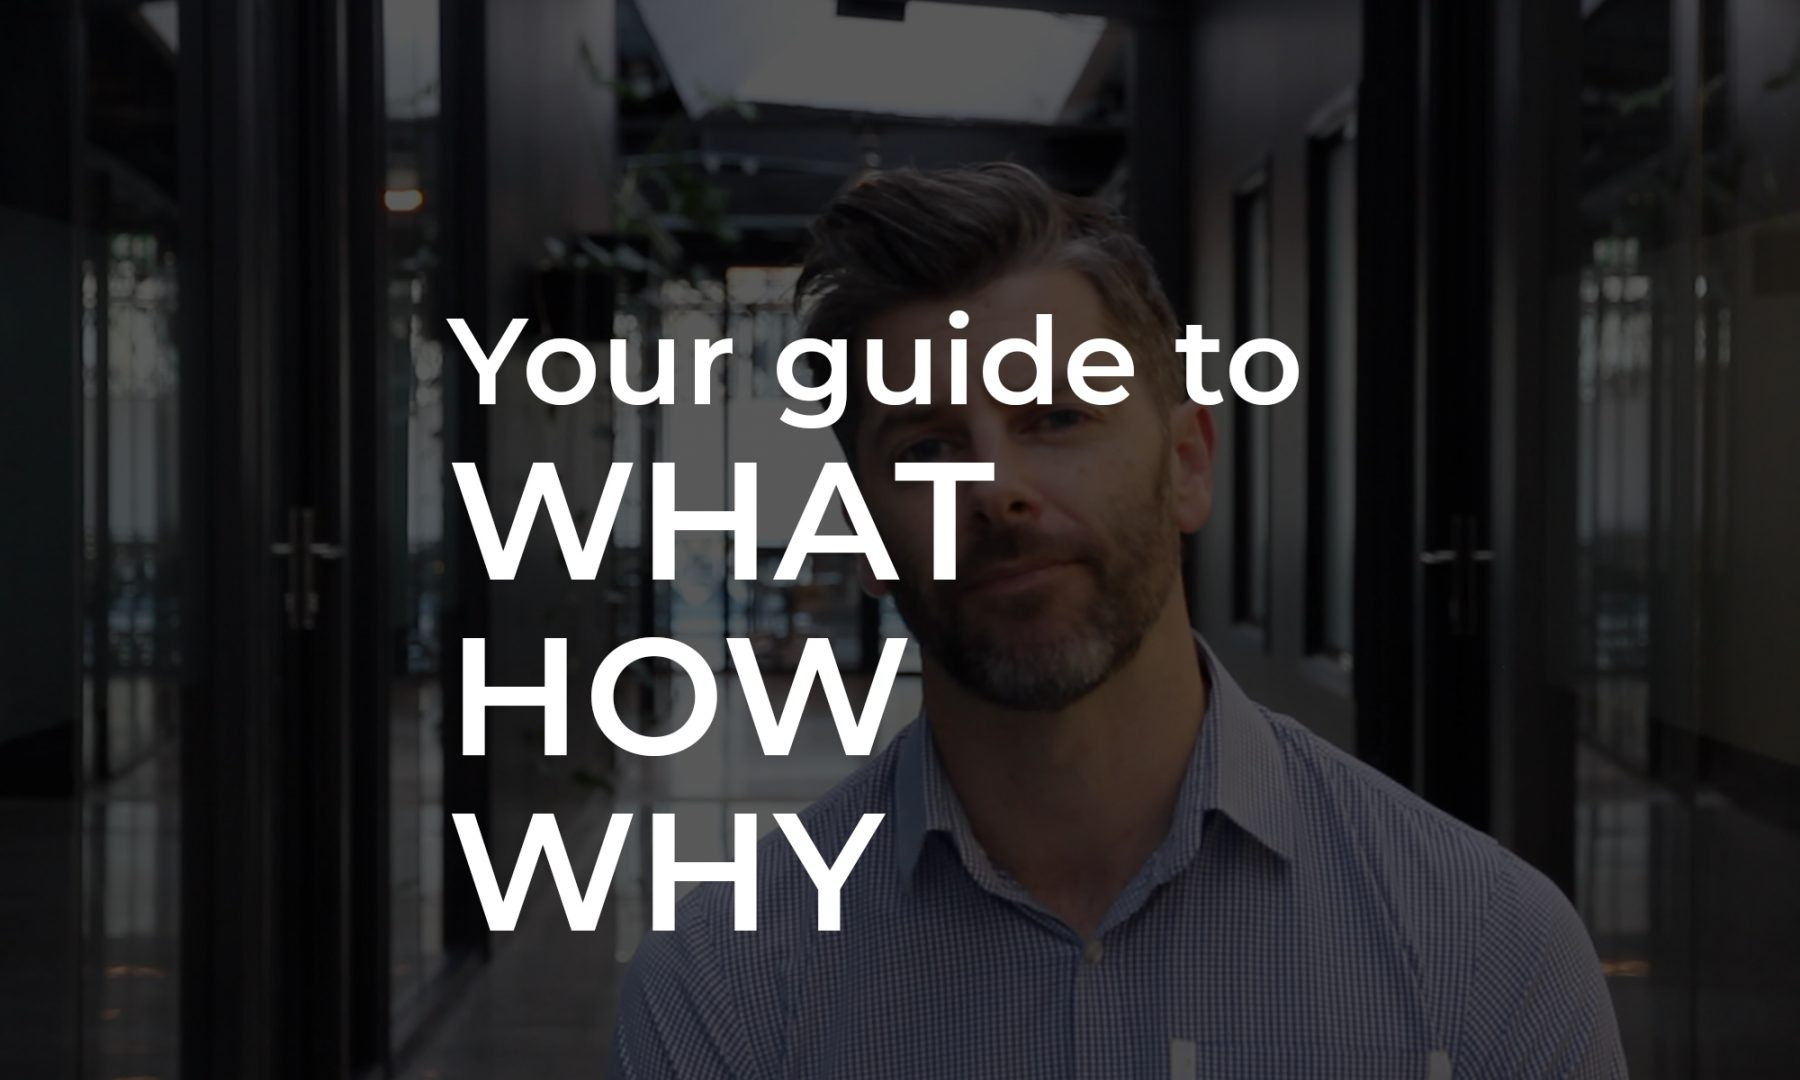 Your guide to what how why